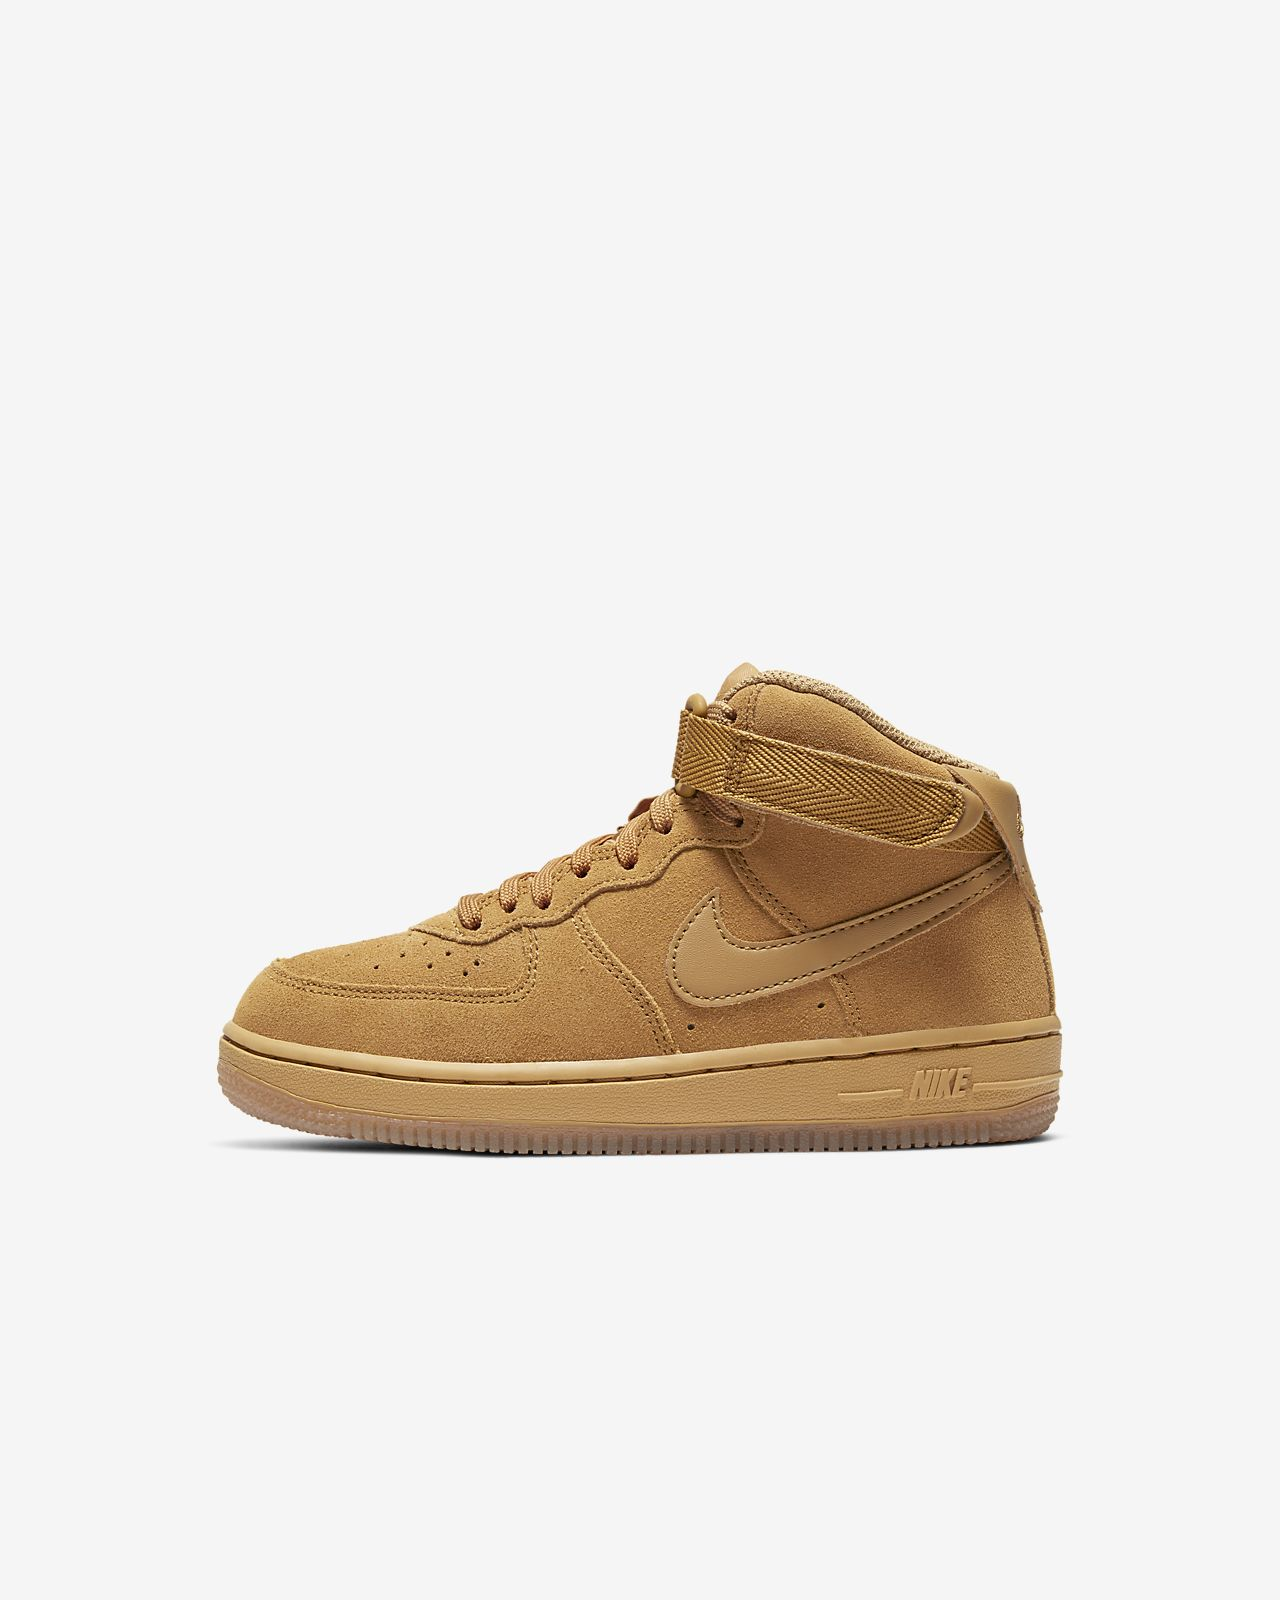 Nike Force 1 Mid LV8 3 (PS) 幼童运动童鞋